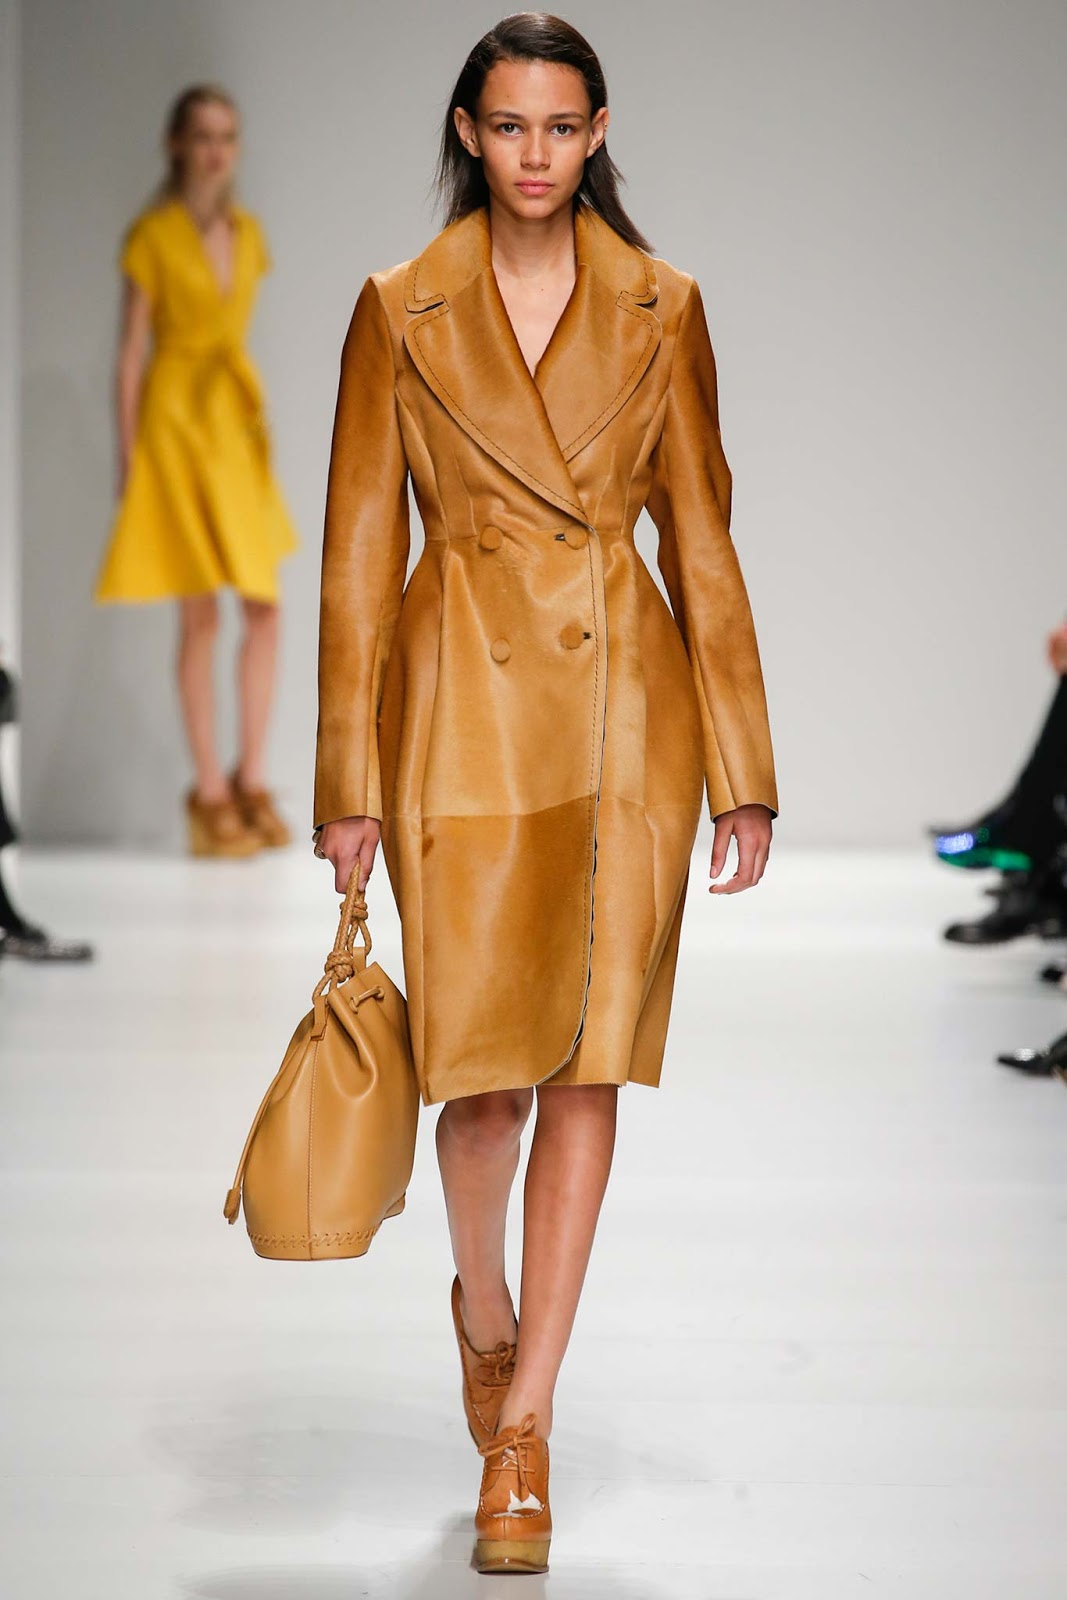 Sportmax Fall/Winter 2015